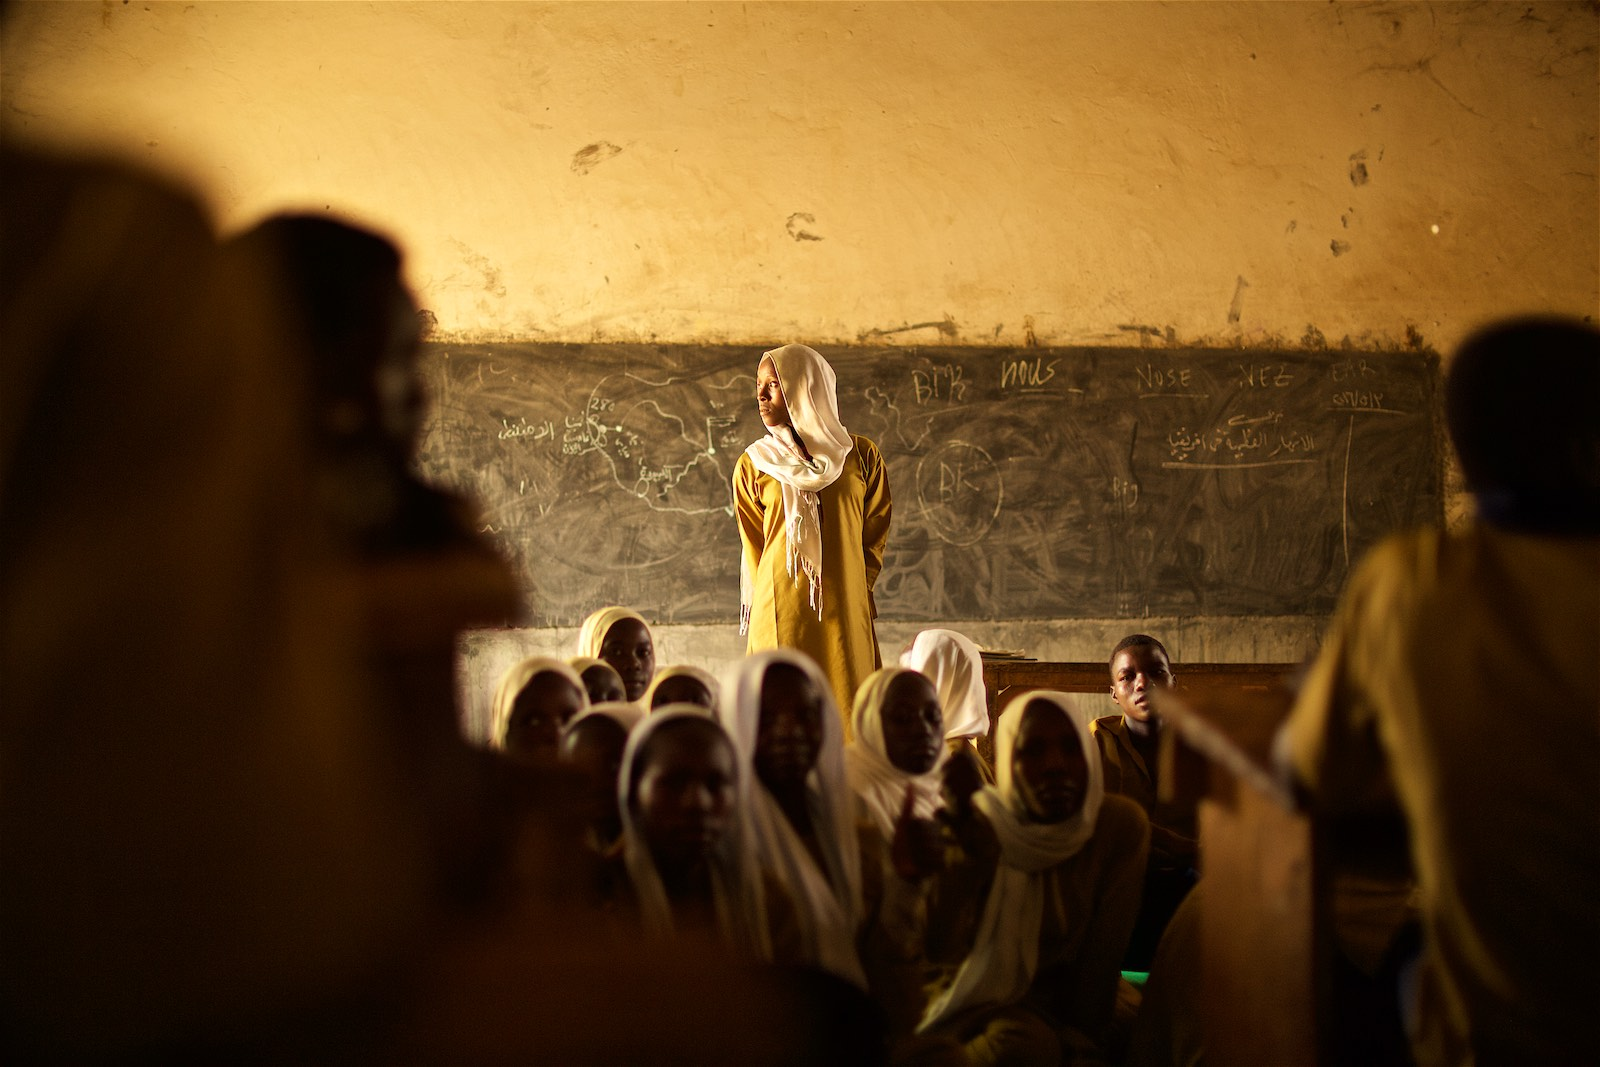 denis-bosnic-chad-school-jrs-jesuit-refugee-service-students-education-mercy-in-motion-30.jpg